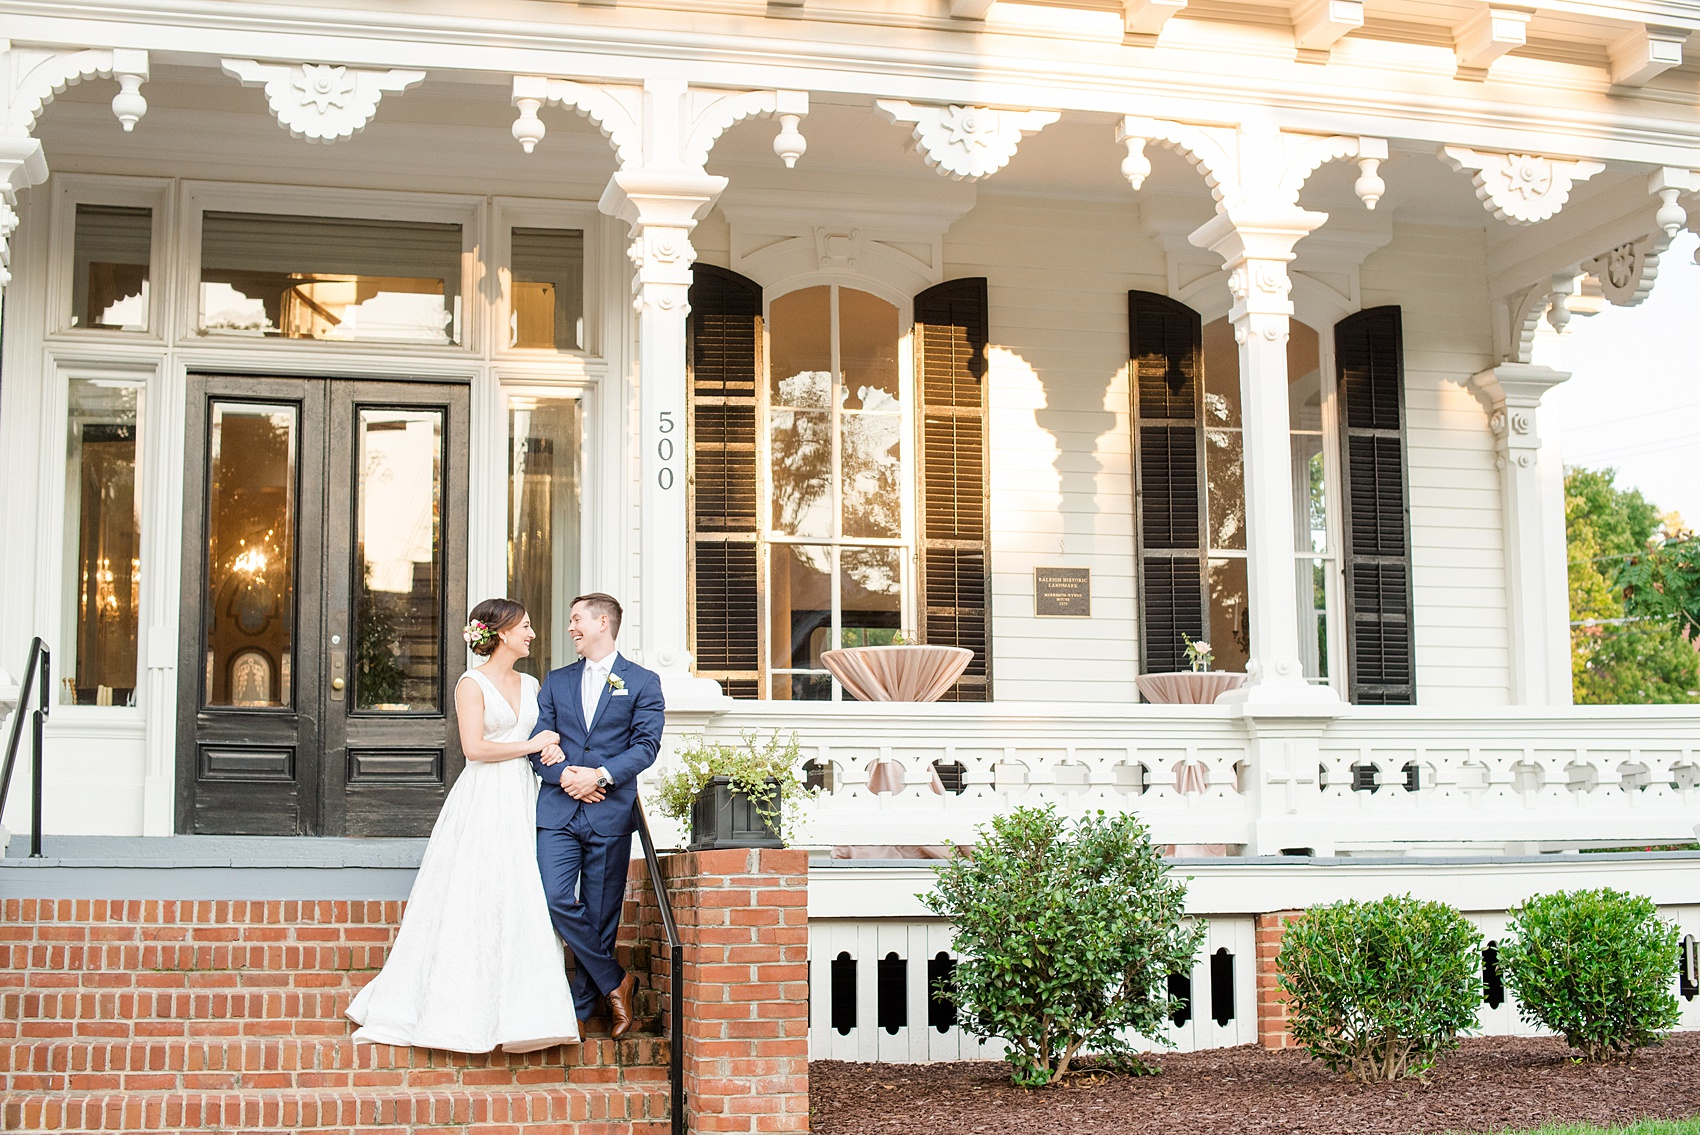 Mikkel Paige Photography pictures from a wedding at Merrimon-Wynne House in Raleigh, NC. Photo of the bride and groom in front of the historic home.